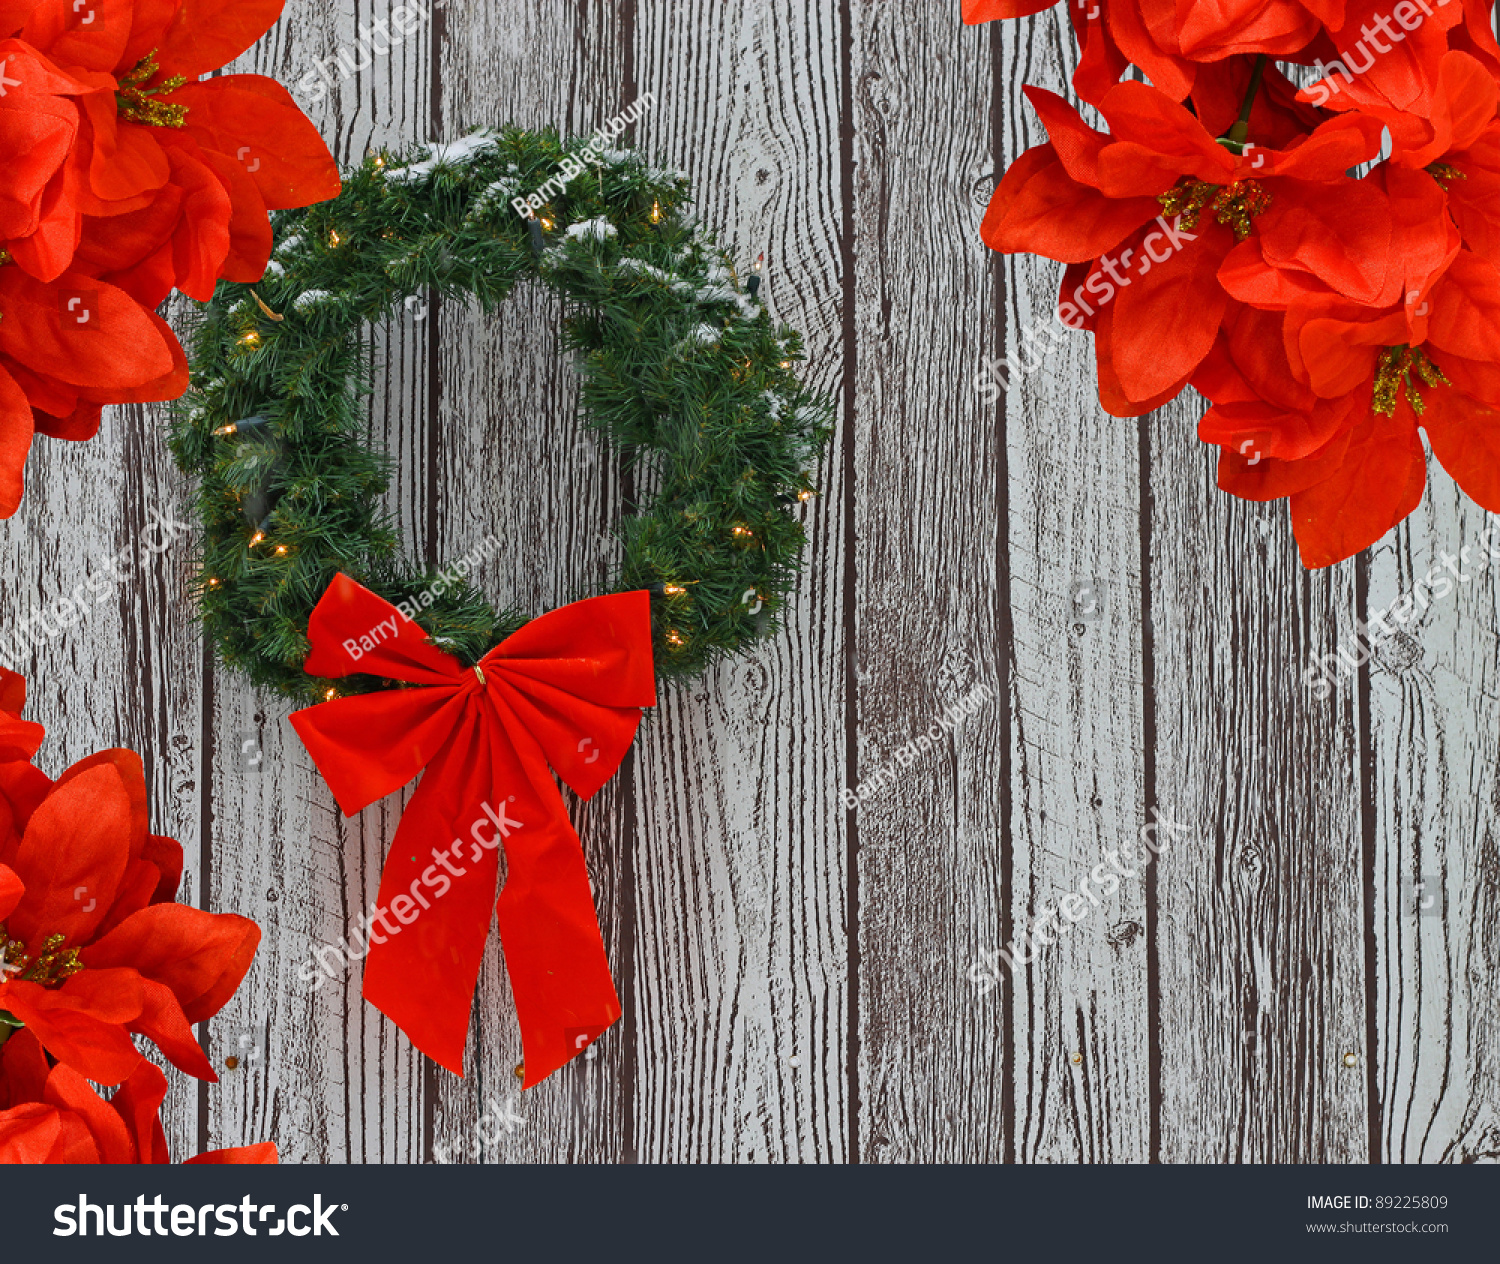 a snow covered lighted christmas wreath with a big red bow on it against a wooden pattern with poinsettias around it while it is snowing out for your use